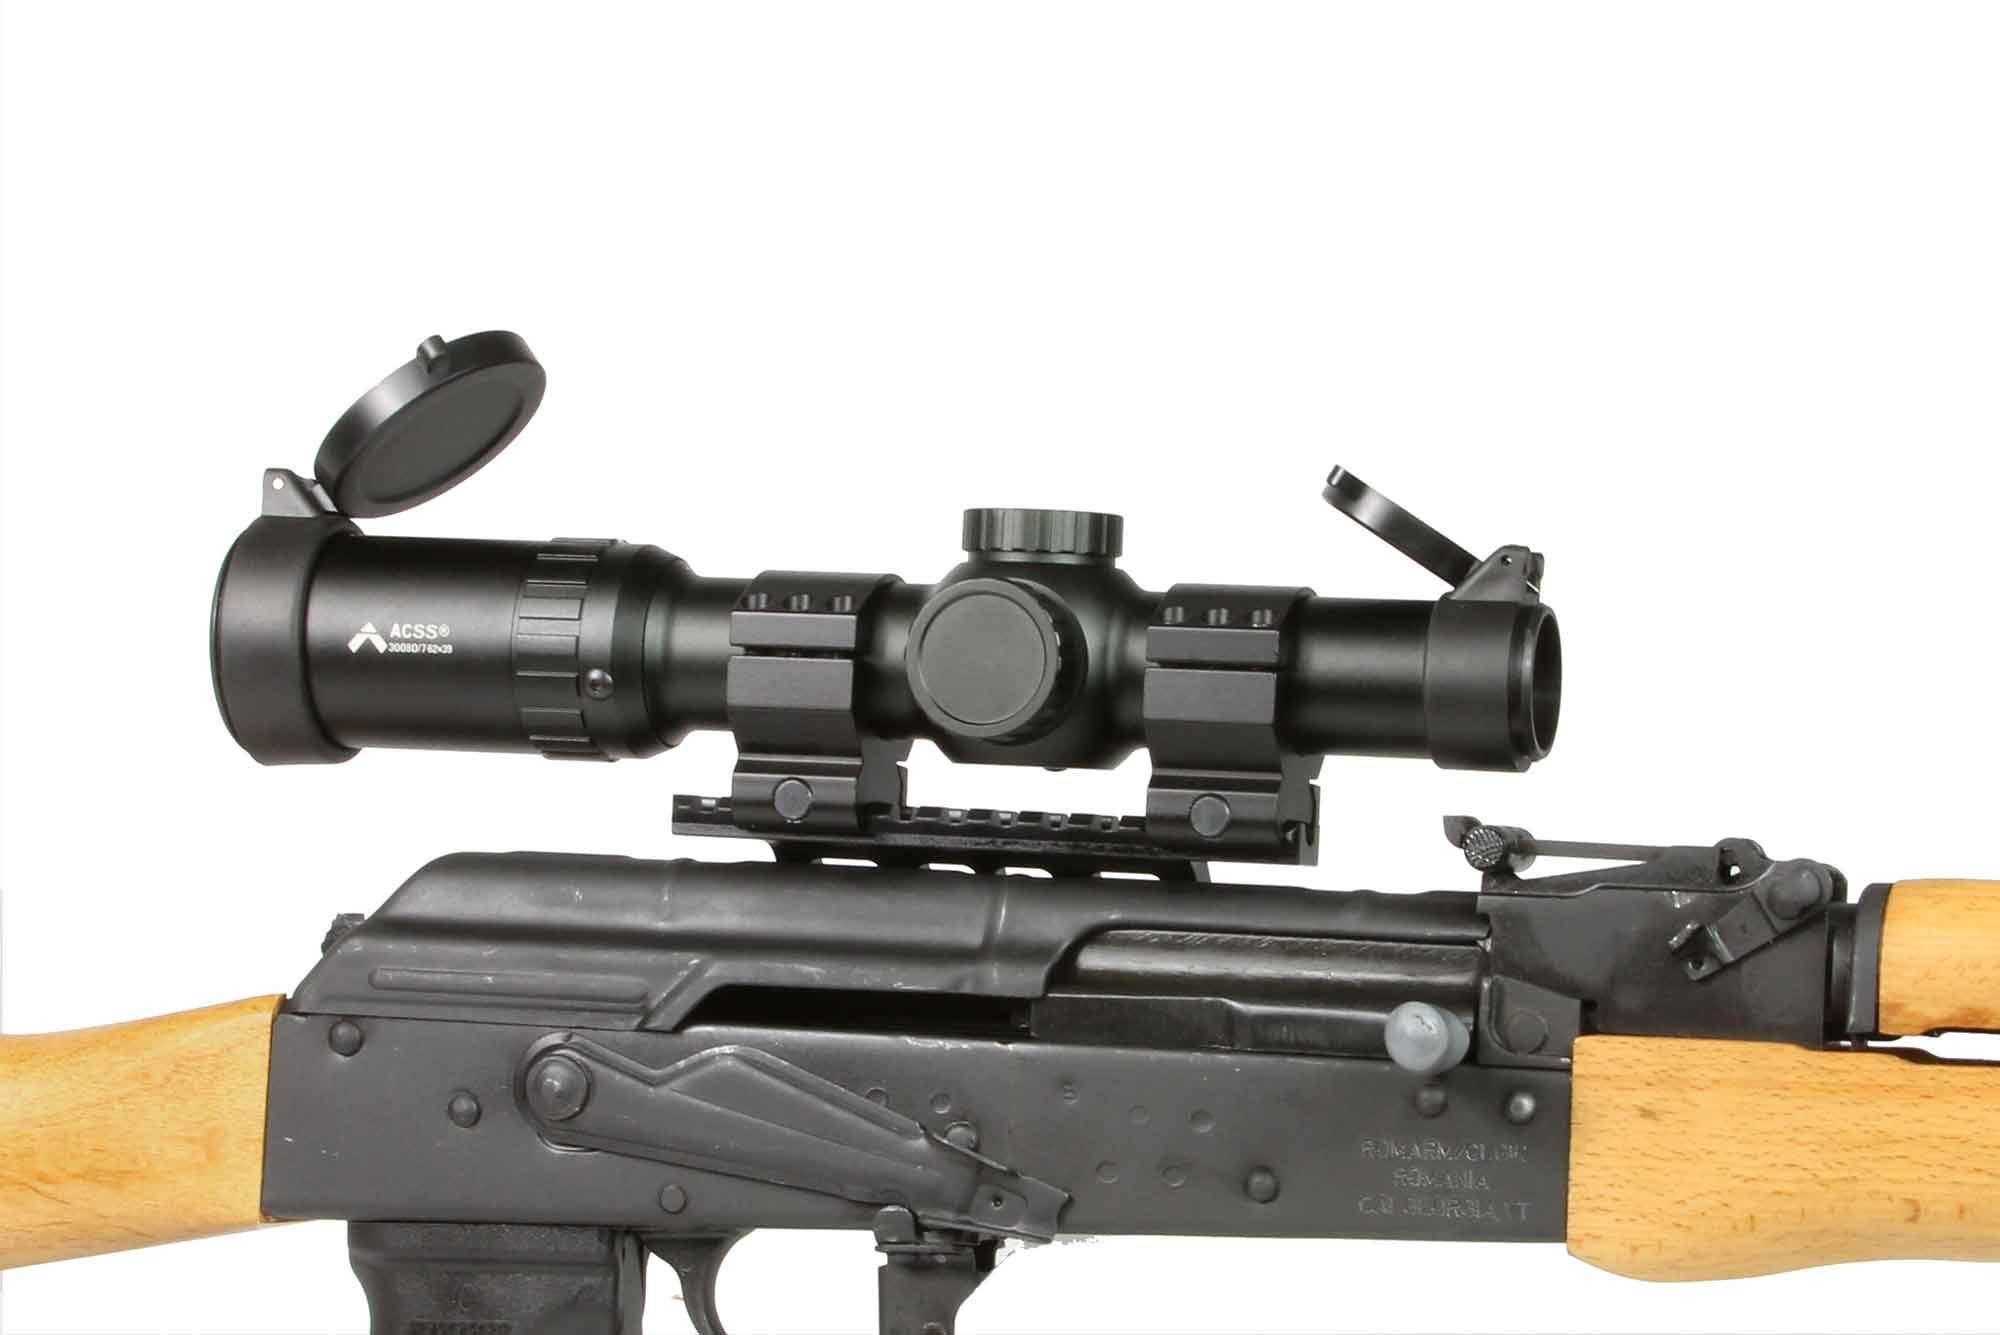 The Primary Arms 1-6x Second Focal Plane Scope features the ACSS reticle and is attached to an ak47 rifle